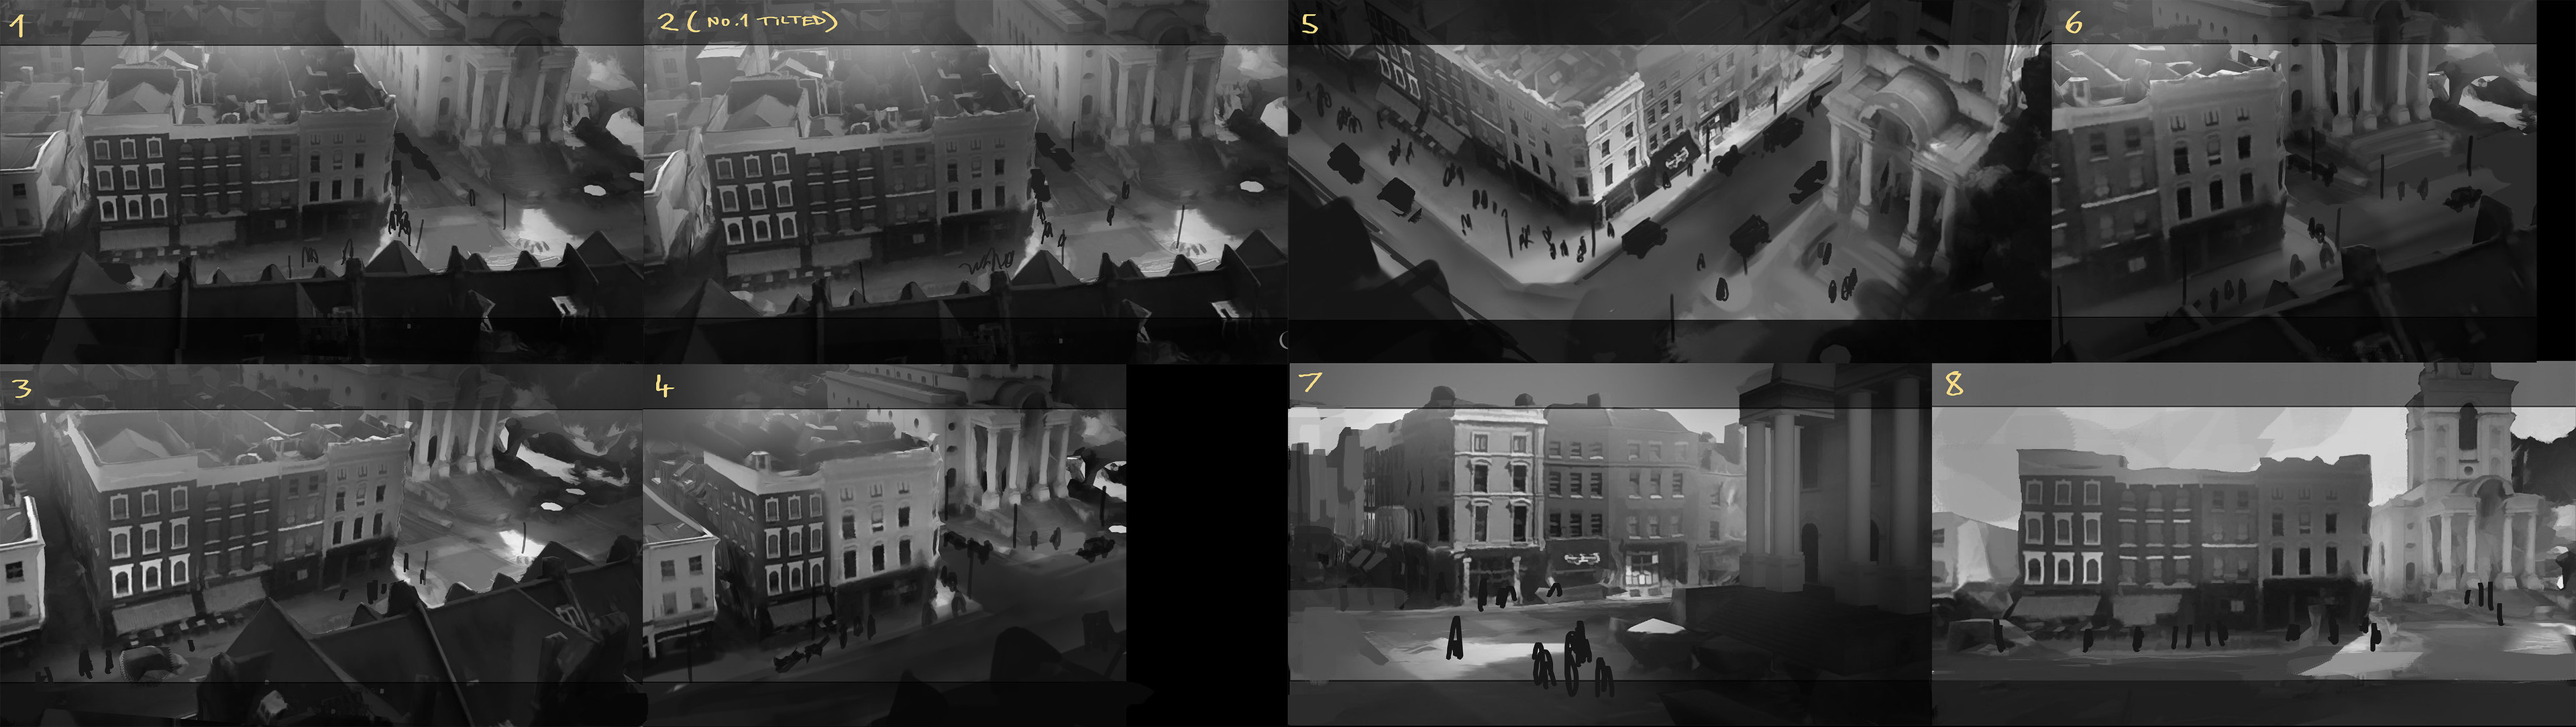 Some early thumbnails, using (very) rough satellite data I grabbed with photogrammetry, and then simplified and painted over in Photoshop. The street on the left is in focus here because the far-left alley is an important location we visit in the game.